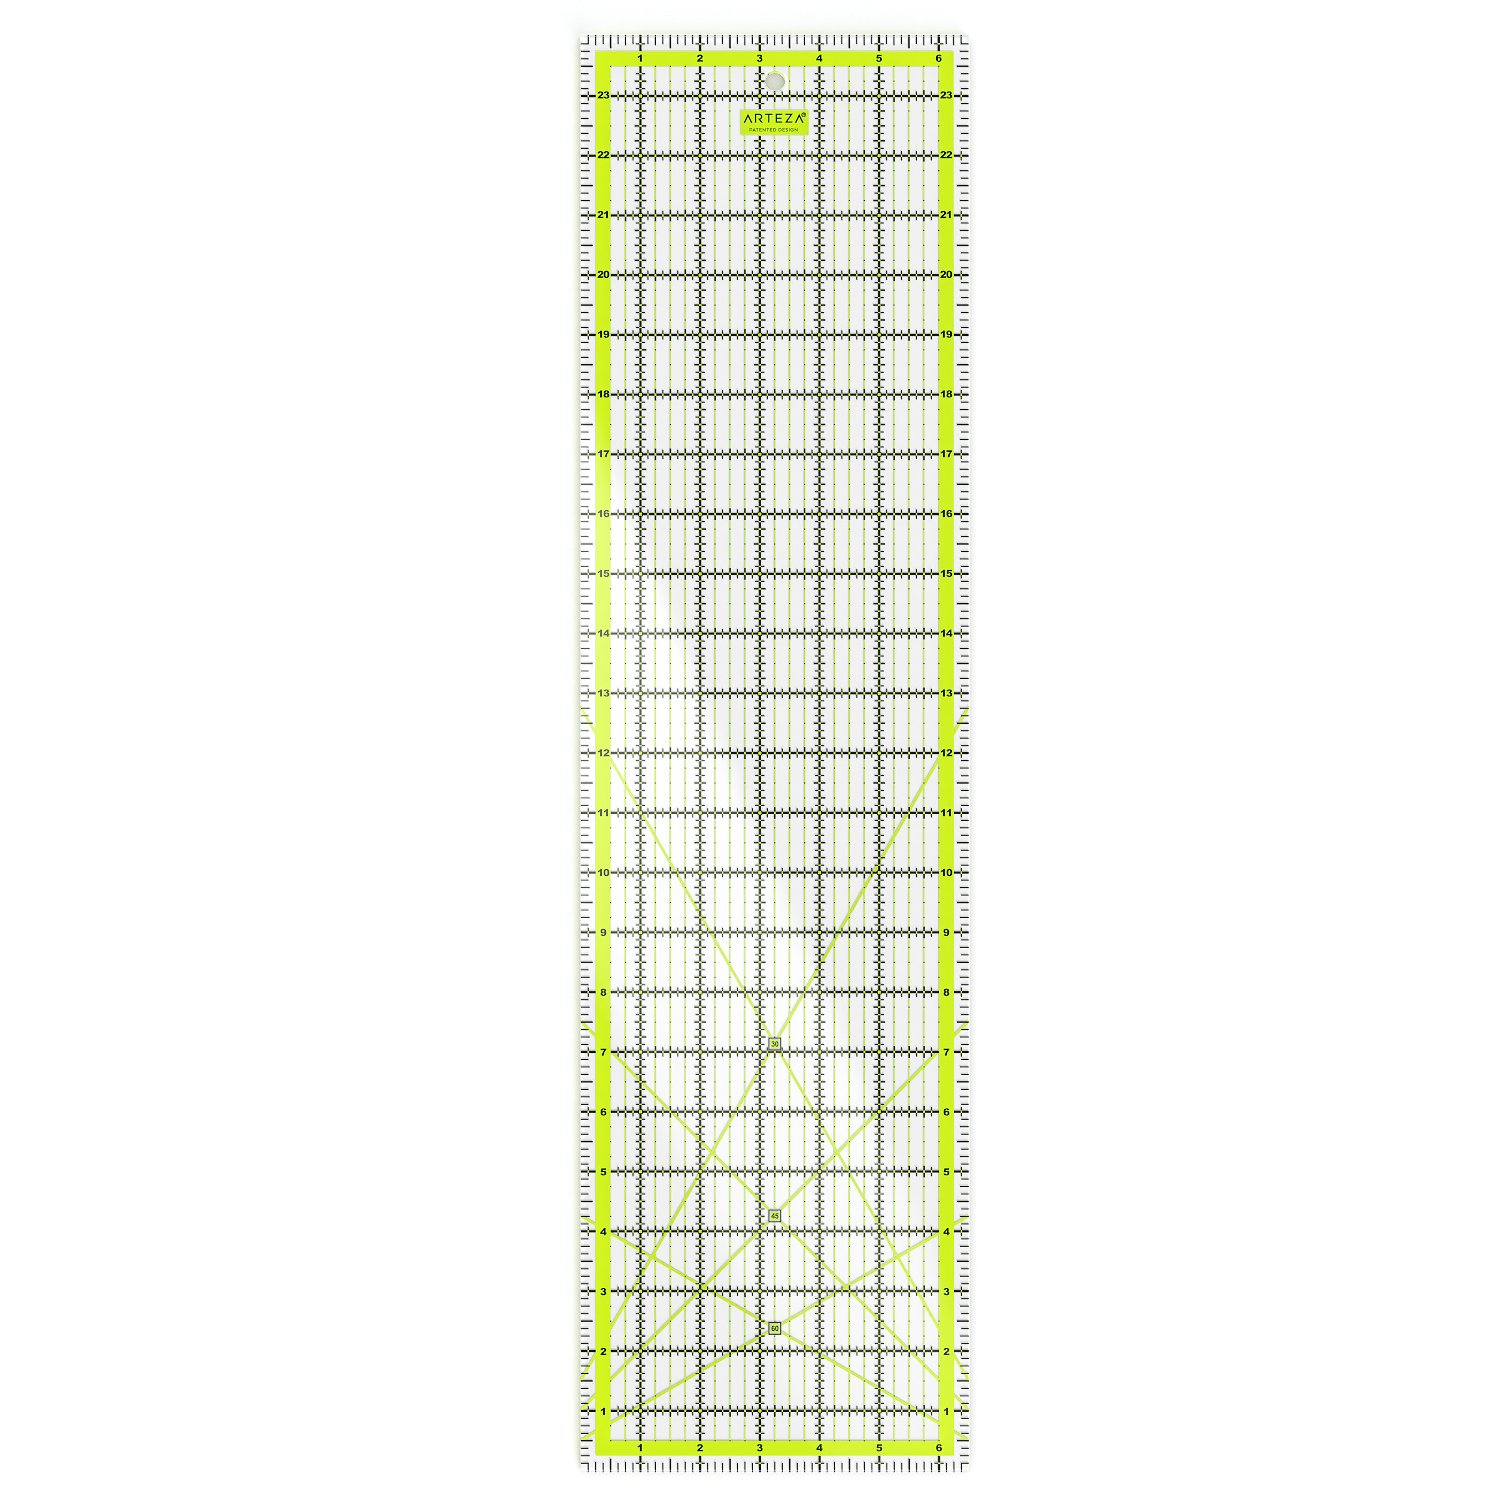 """ARTEZA Quilting Ruler, Laser Cut Acrylic Quilters' Ruler with Patented Double Colored Grid Lines for Easy Precision Cutting, 6.5"""" Wide x 24"""" Long for Quilting, Sewing & Crafts, Black & Lime Green"""